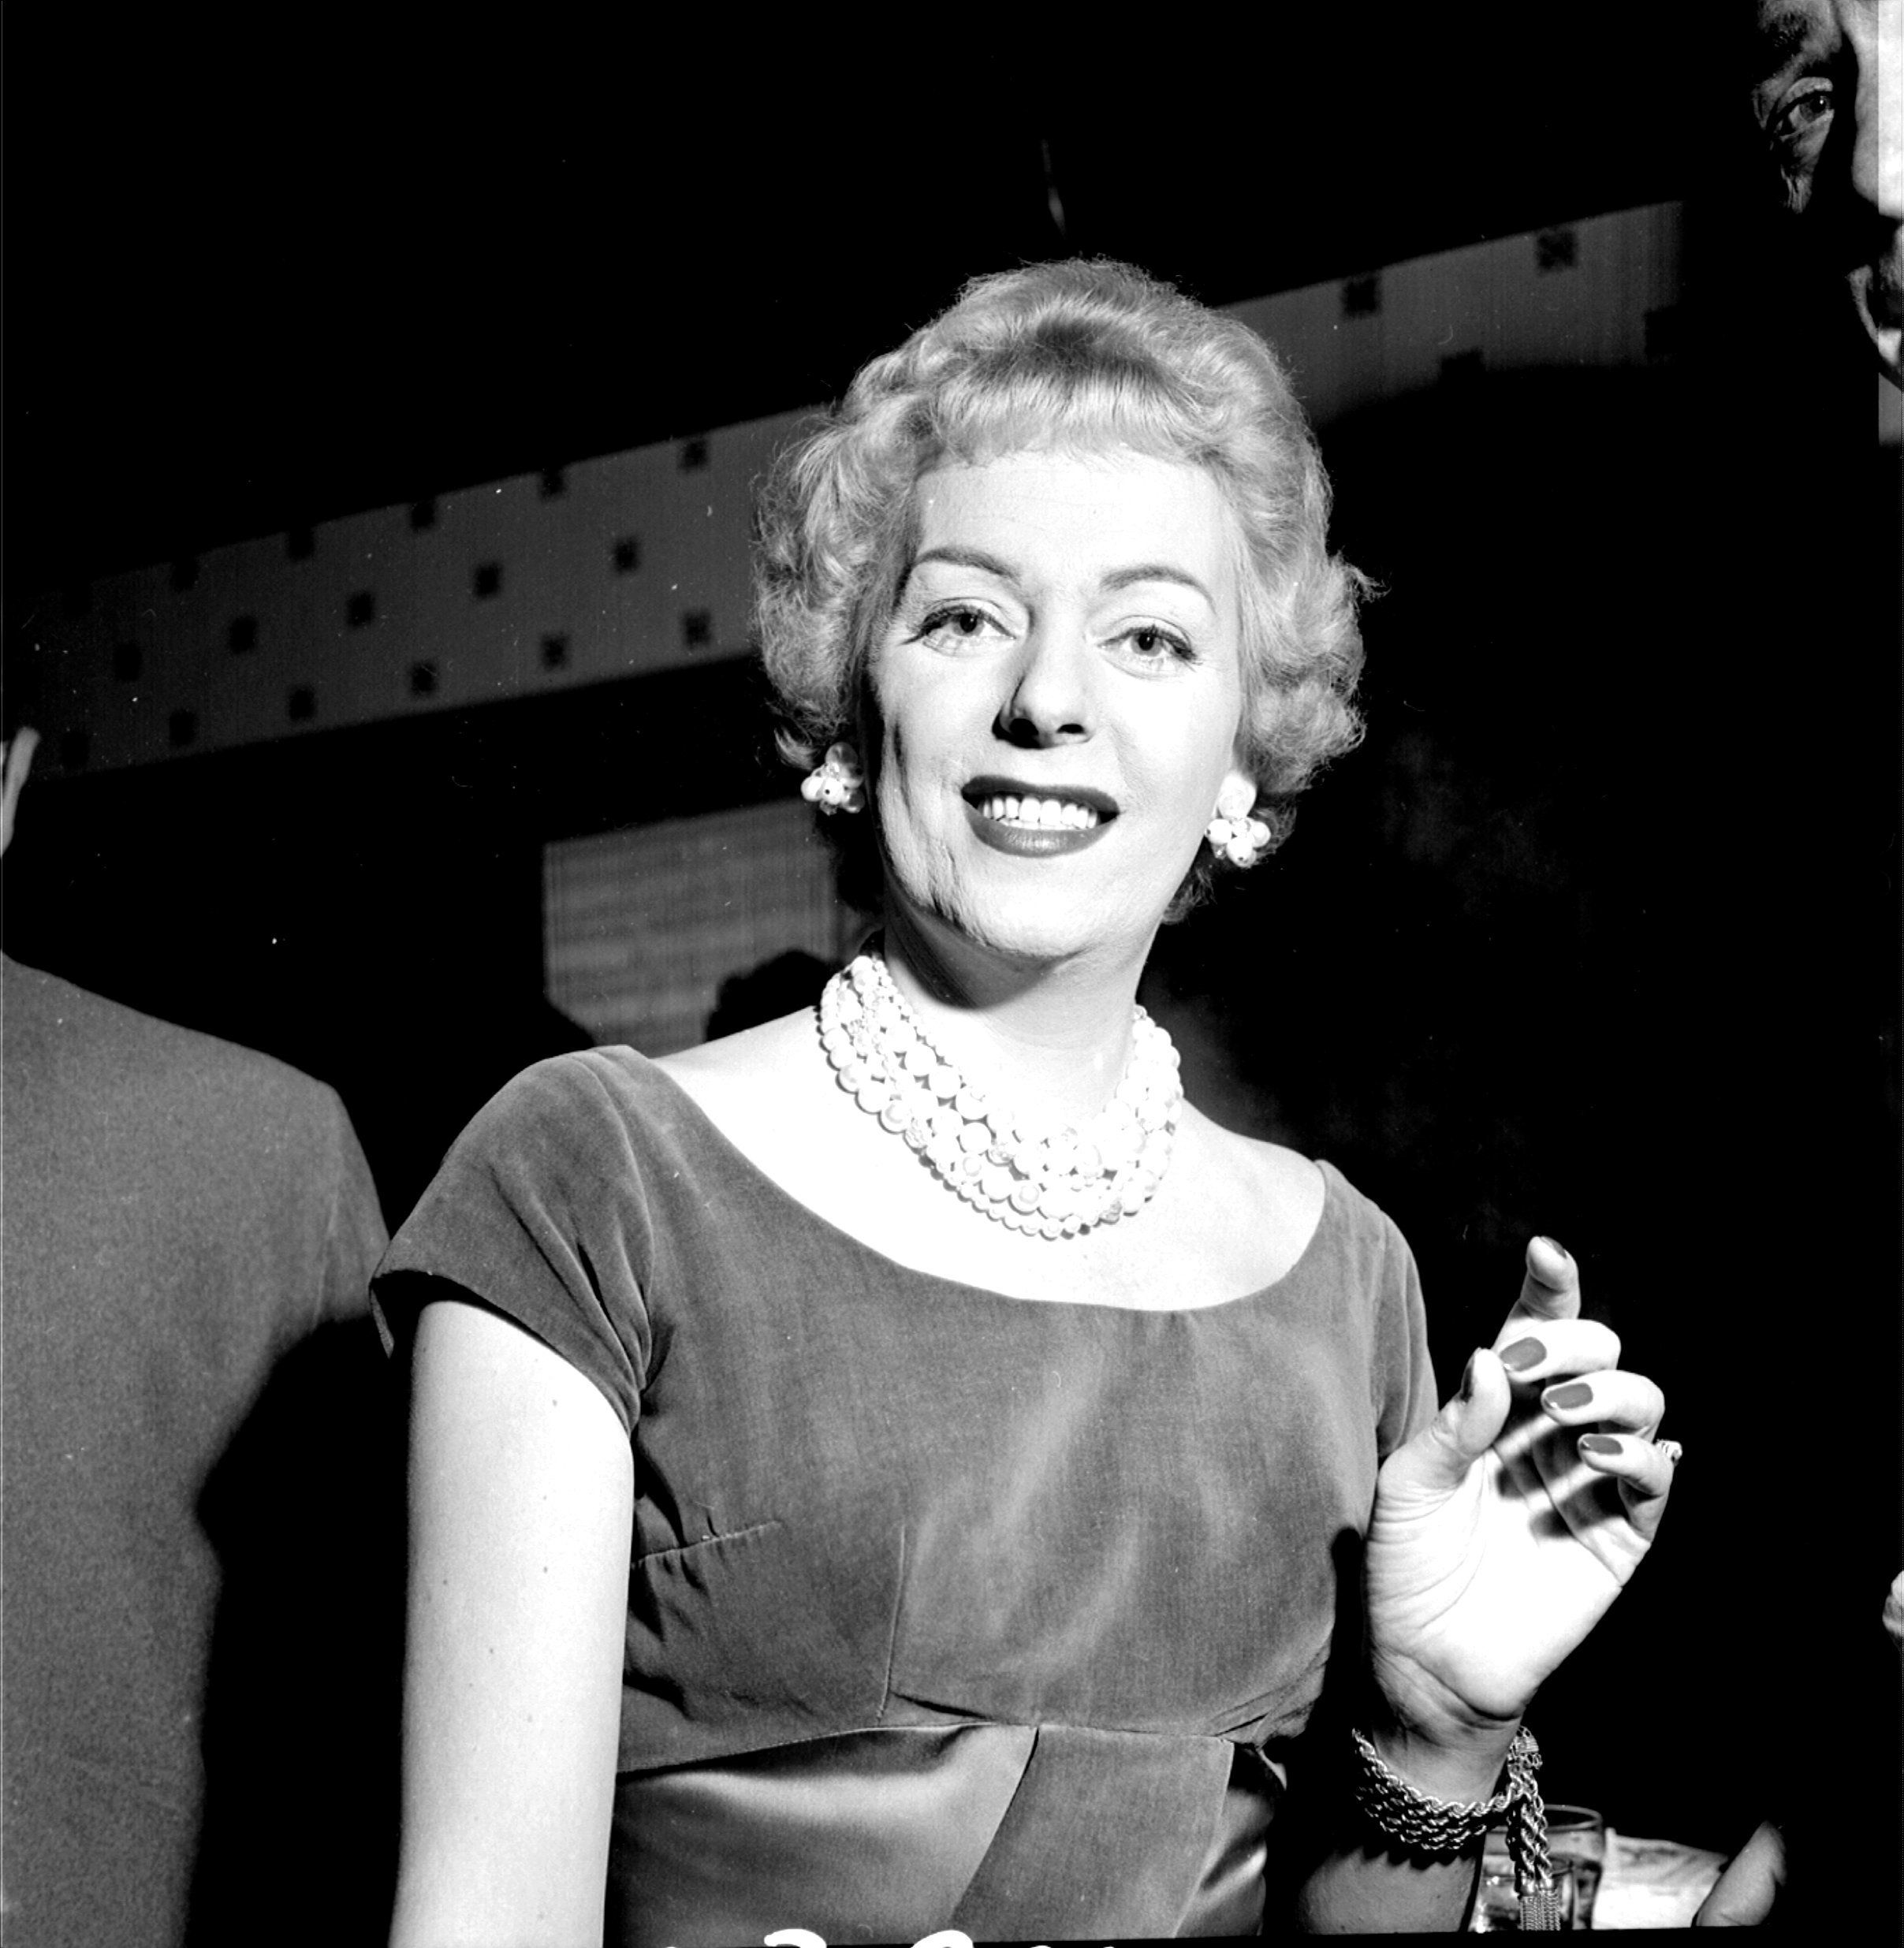 UNSPECIFIED - CIRCA 1970:  Photo of Christine Jorgenson  Photo by Michael Ochs Archives/Getty Images